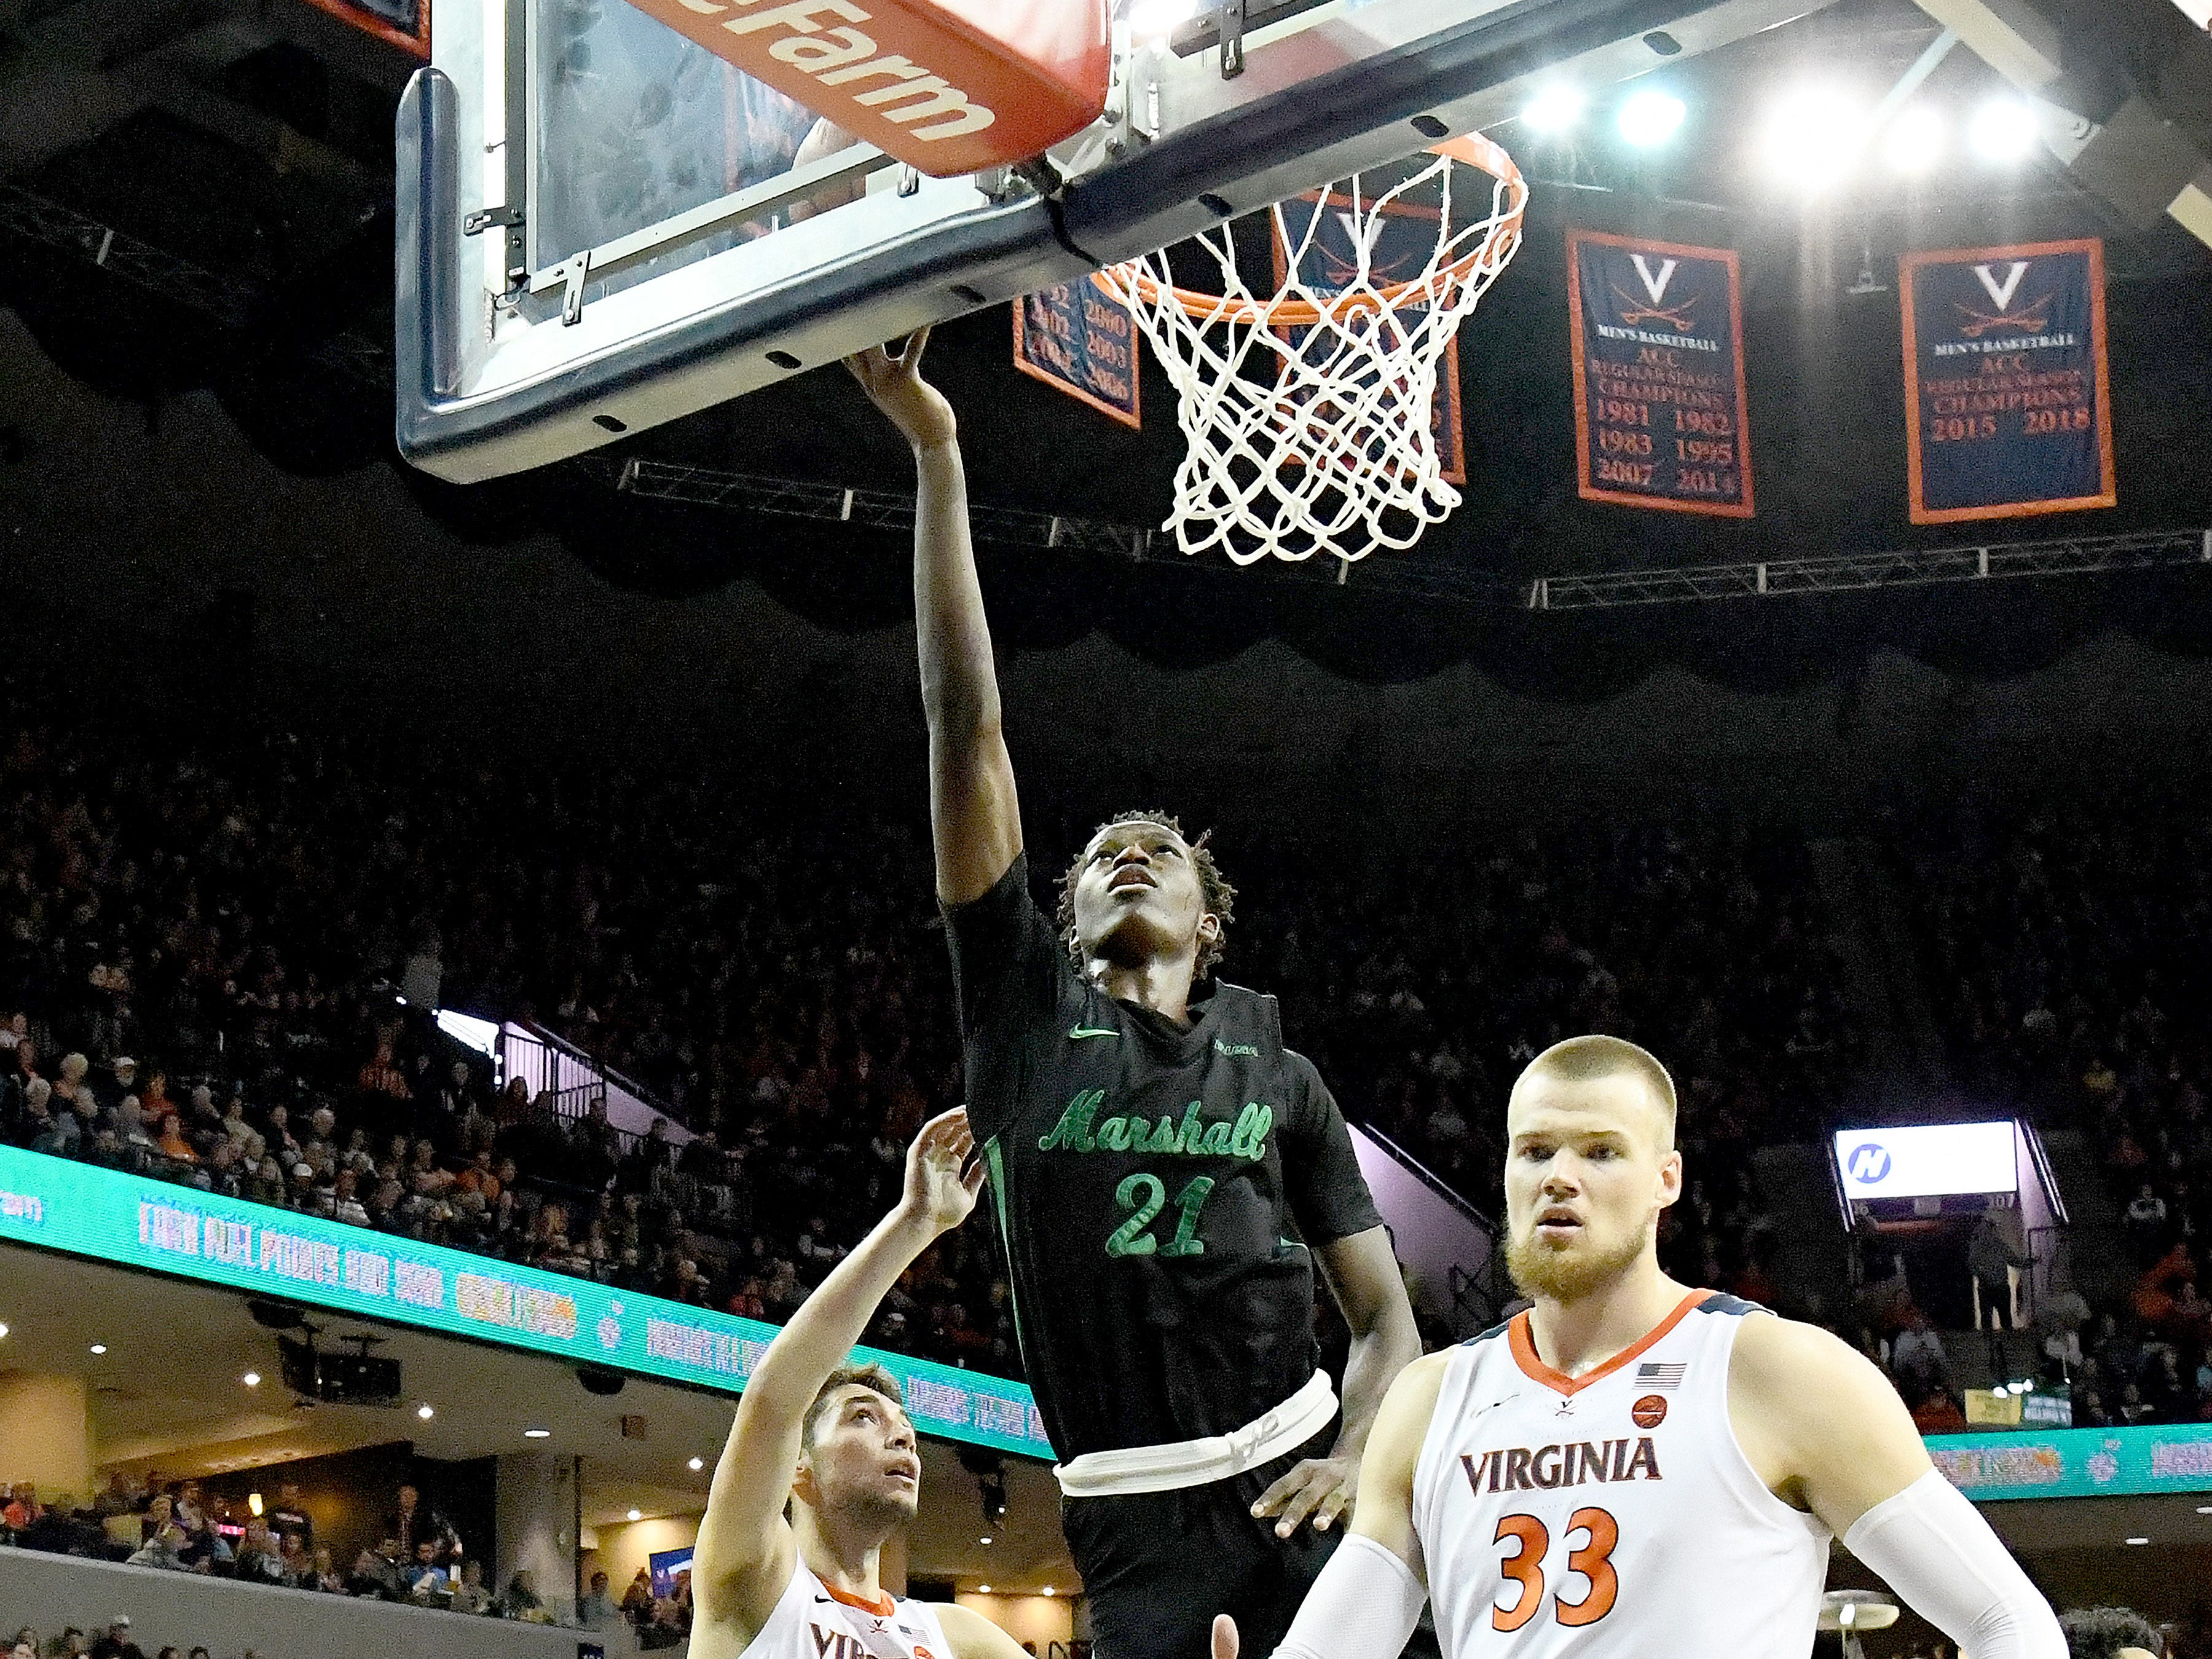 Marshall's Darius George, former R.E. Lee star, shoots during their game against University of Virginia, played at the John Paul Jones Arena on Dec. 31, 2016.